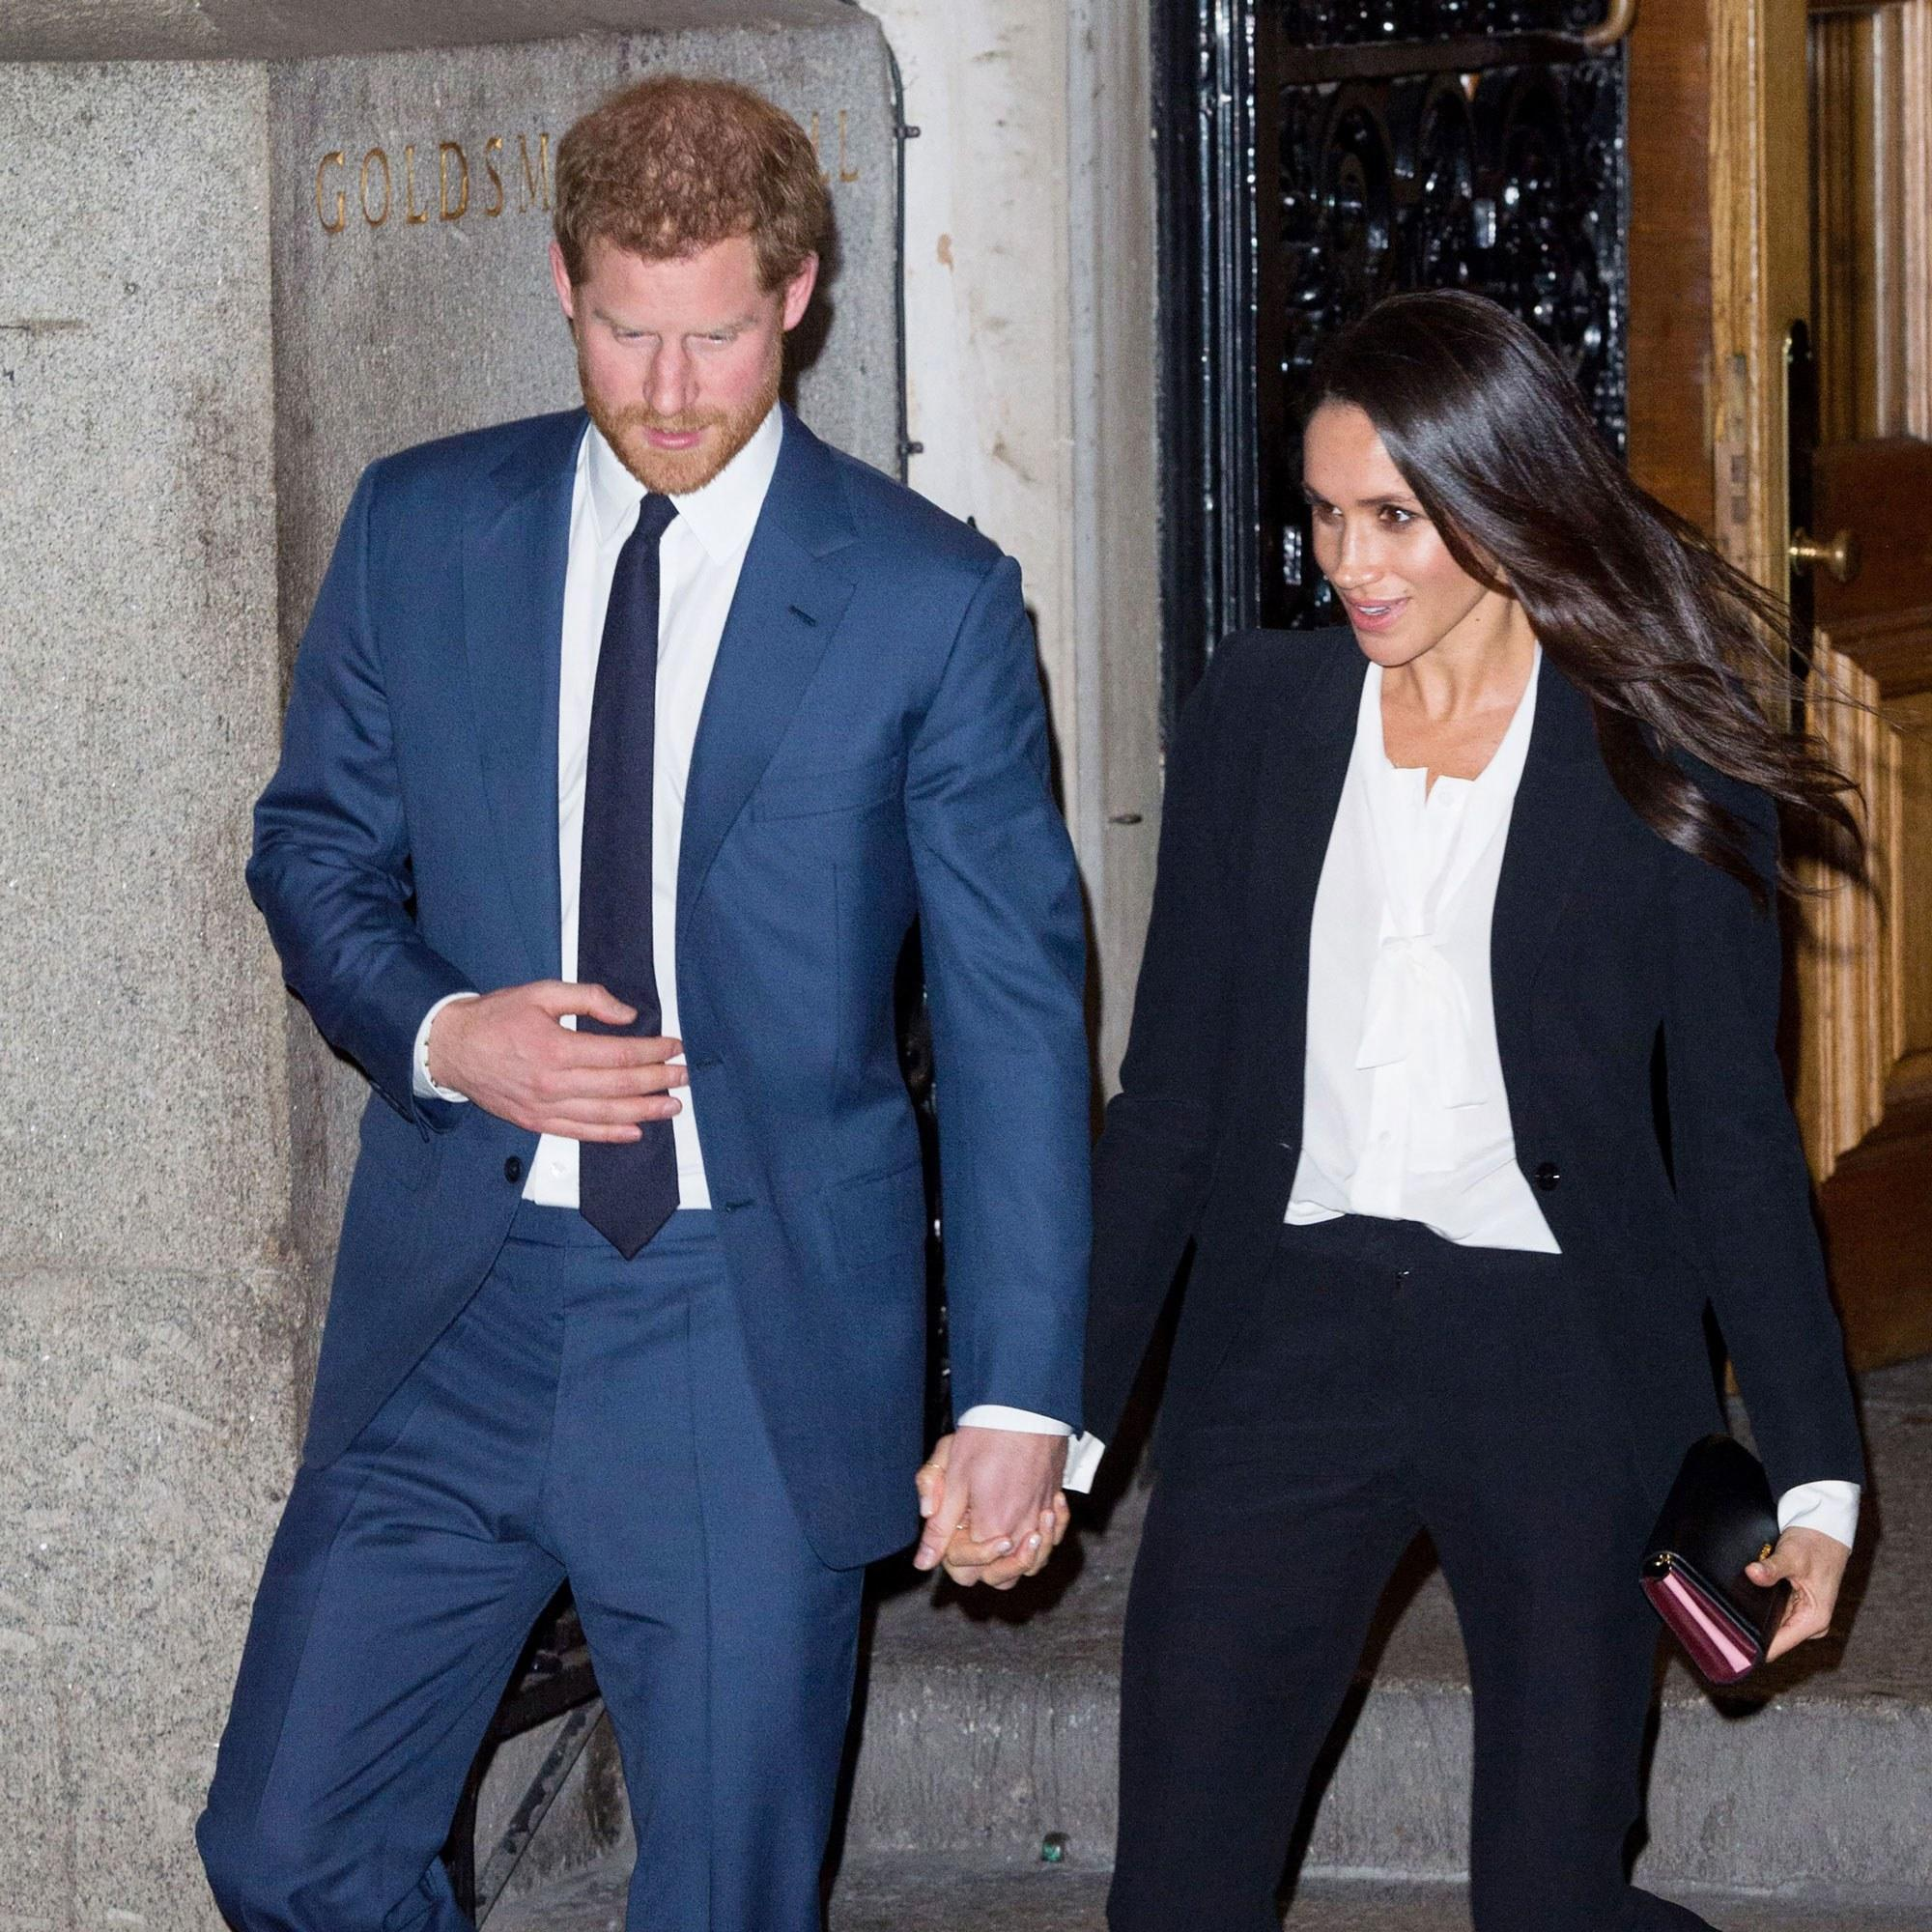 b75305c6d68 What If Meghan Markle Wore a Suit to the Royal Wedding